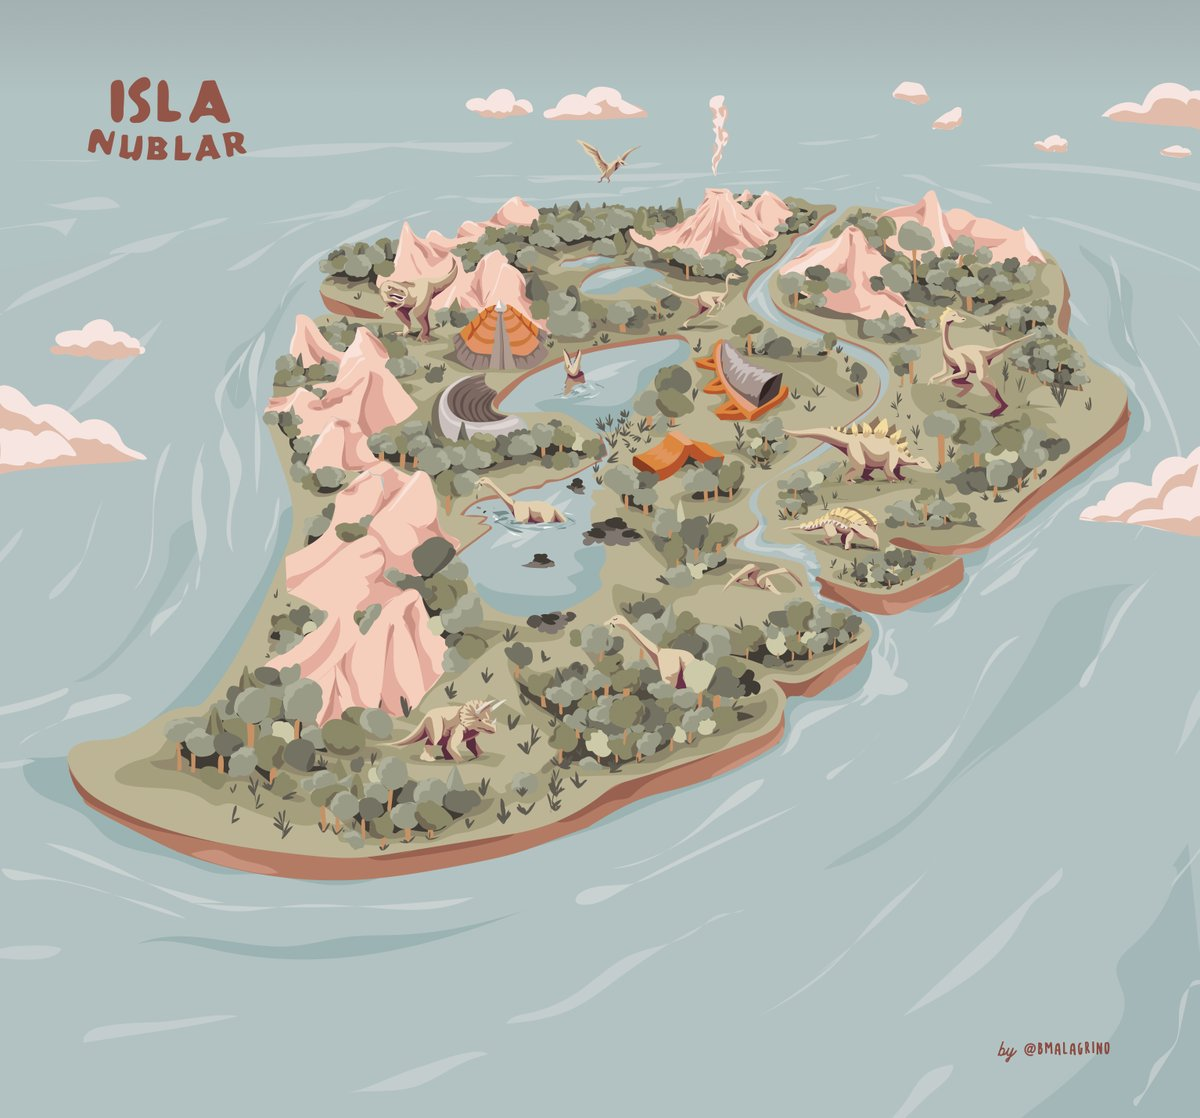 """An incredible idea for a gift this holiday season is a beautifully illustrated map made custom on Fiverr.  We challenged """"Bruno_Malagrino"""" to make a map of the island of  """"Isla Nublar"""" from Jurassic Park, and he did not disappoint.  https://t.co/fWwyJKl3sh https://t.co/f6TfoCAZsN"""